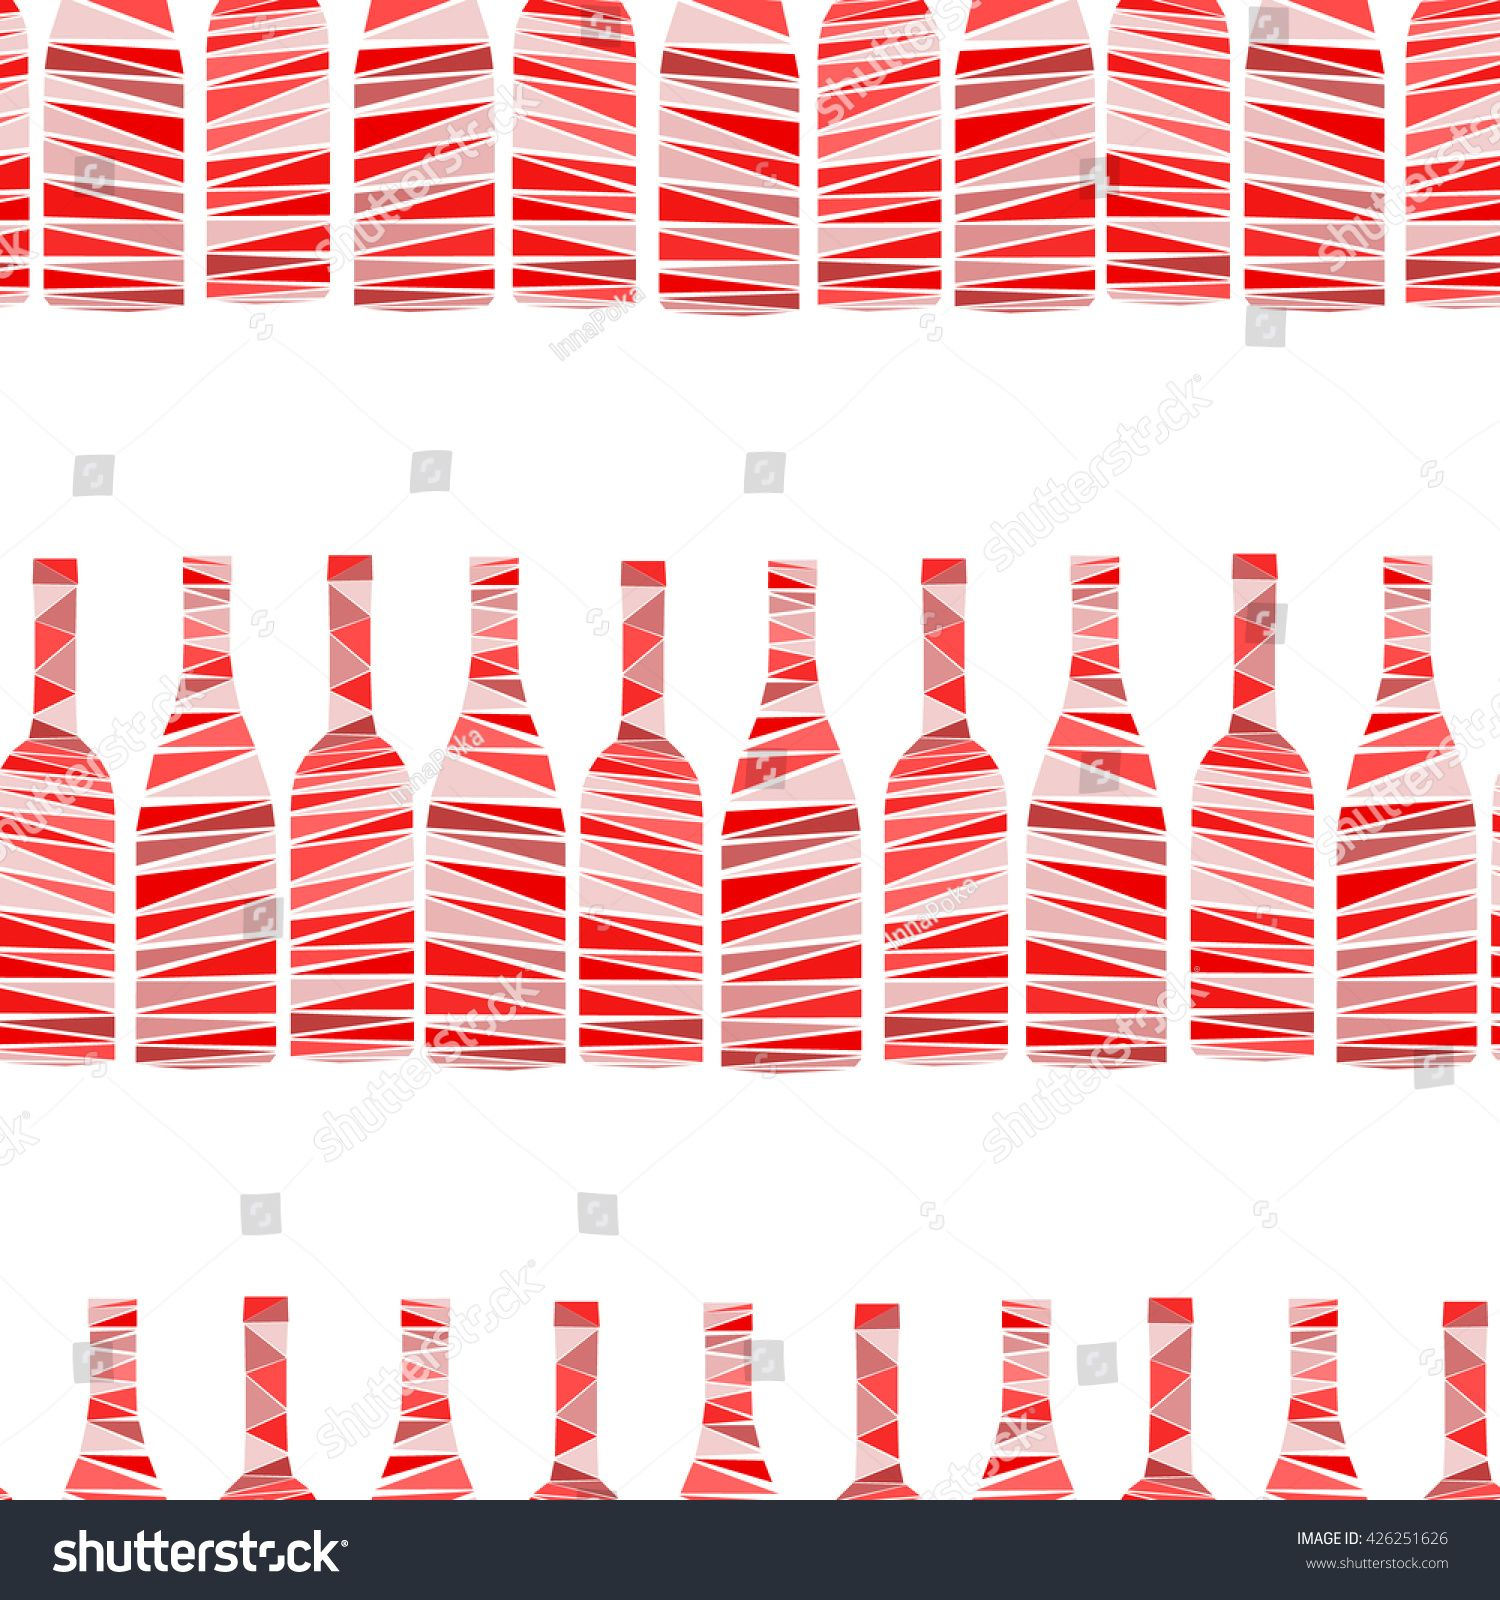 Seamless Pattern Of Wine Bottles On White Background Mosaic Art Of Bottles In Simple Geometric Style Creative Vector I In 2020 Mosaic Art Creative Seamless Patterns